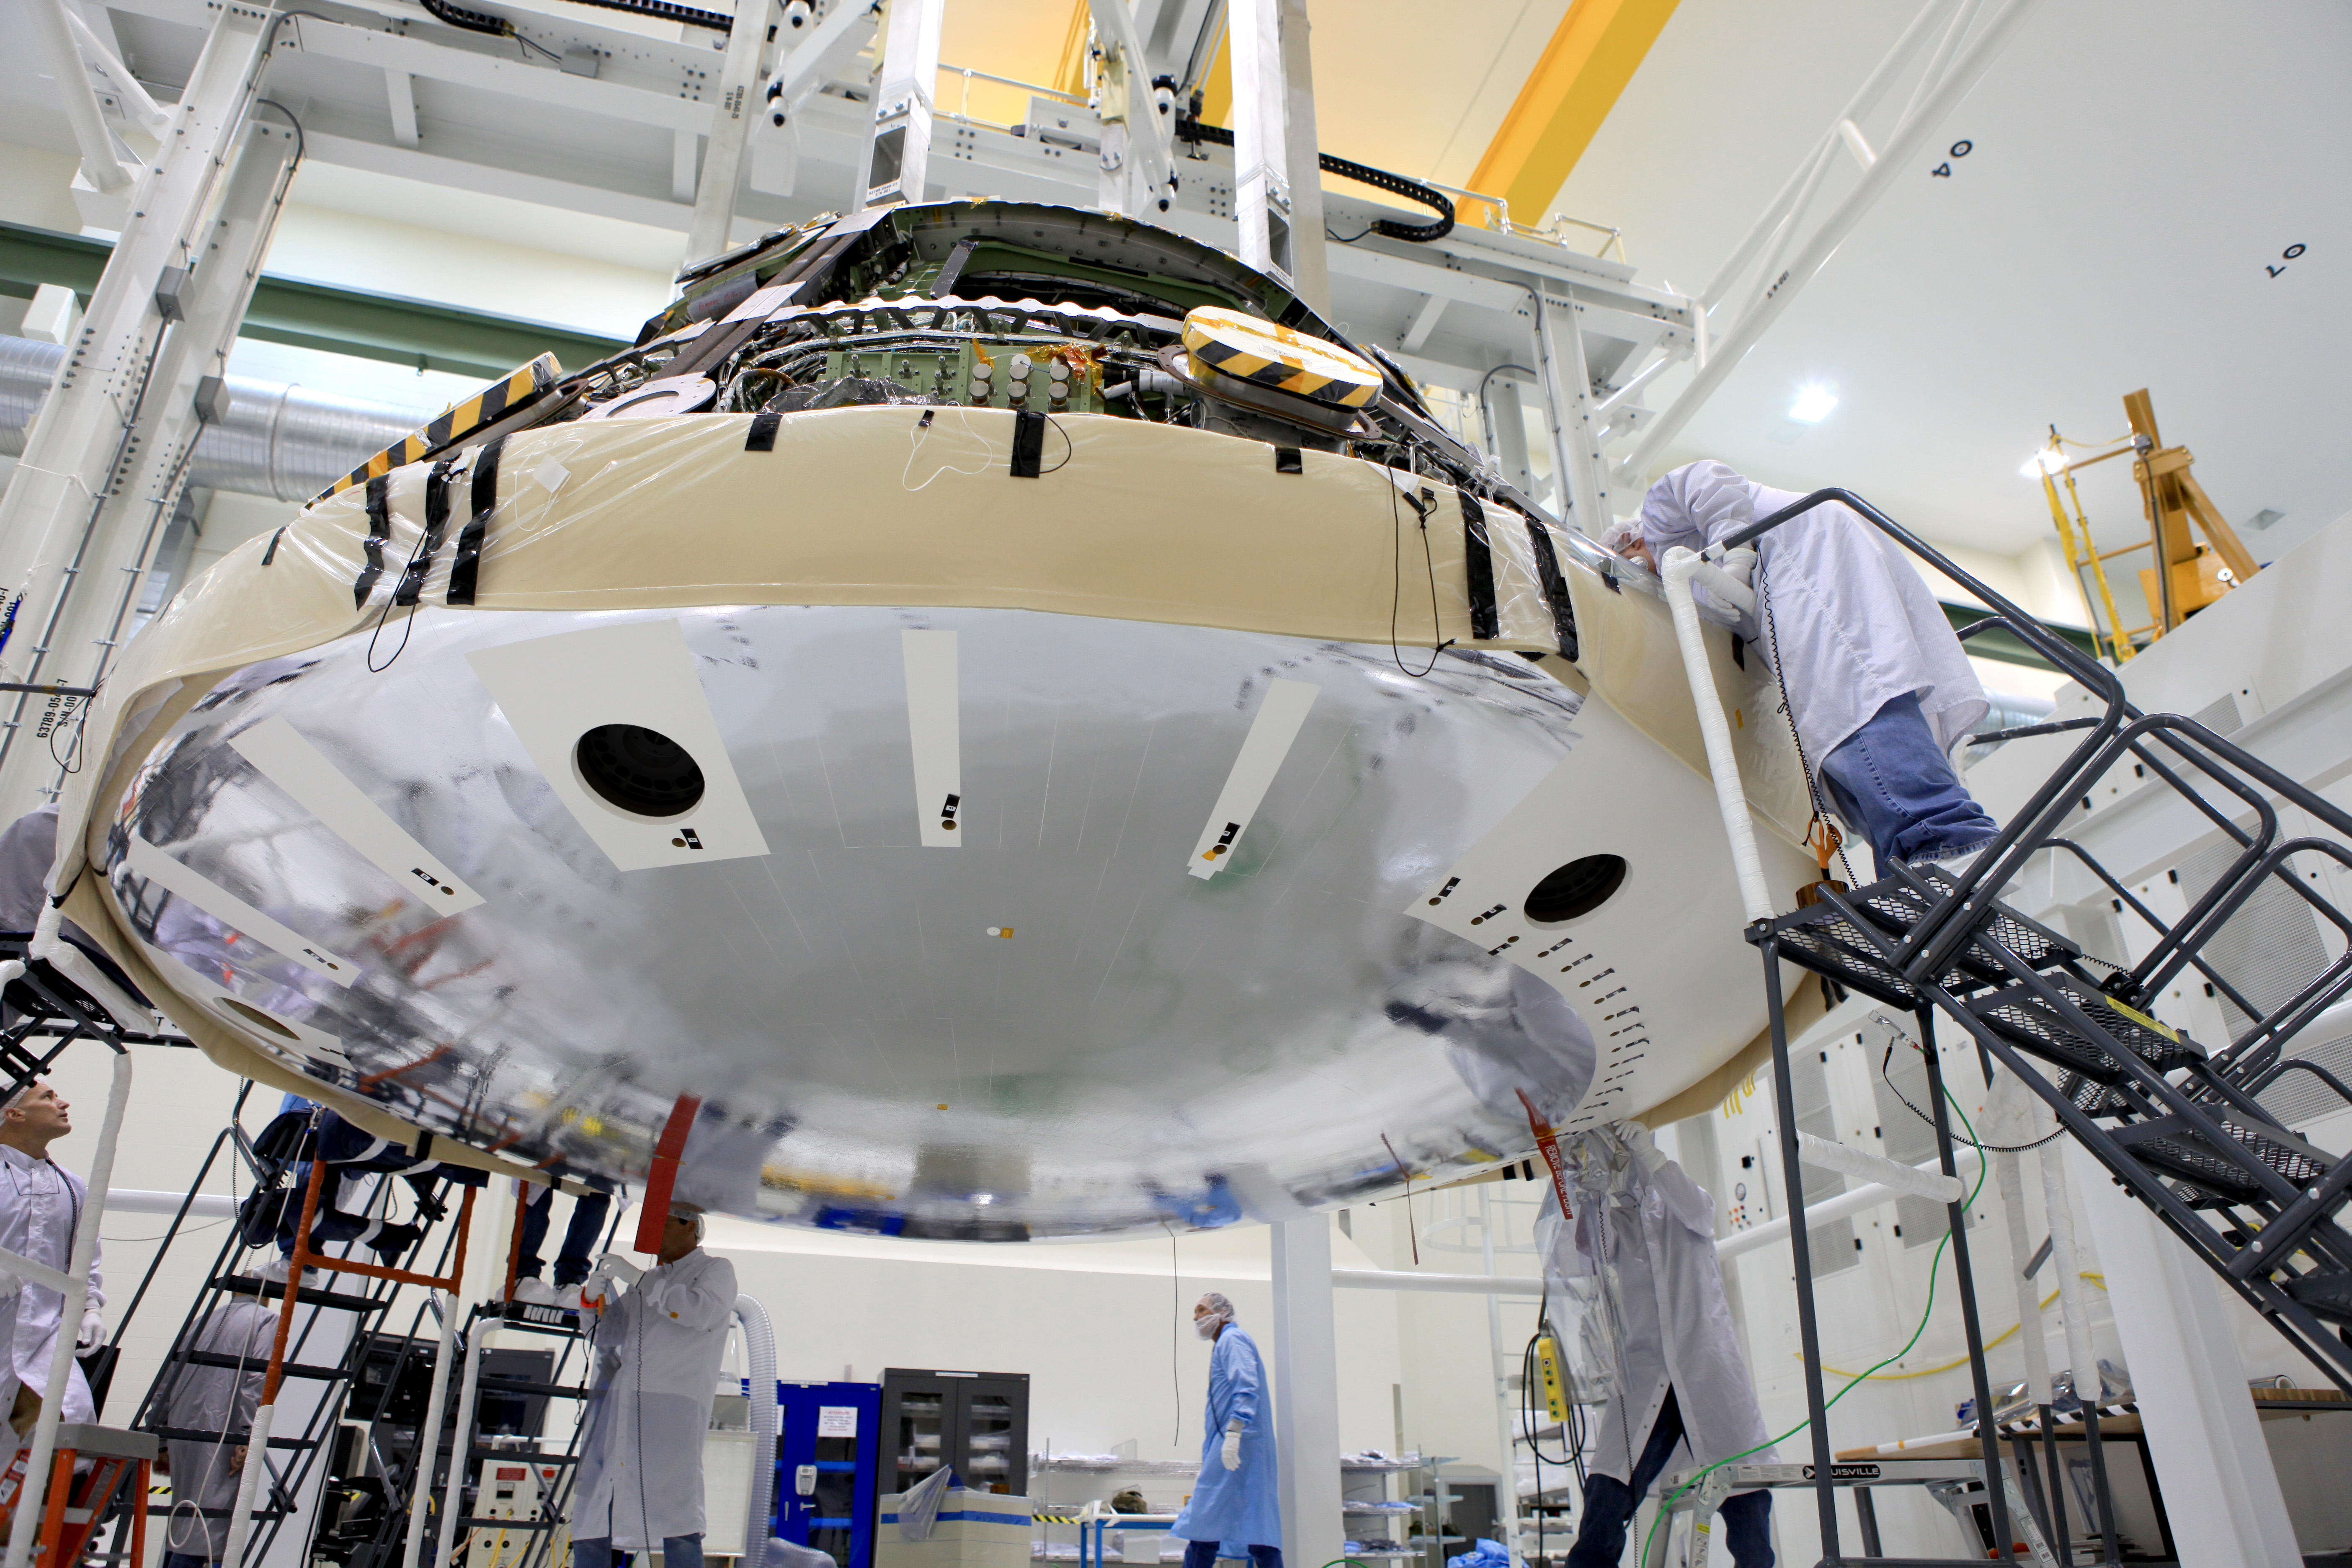 nasa orion heat shield - photo #7